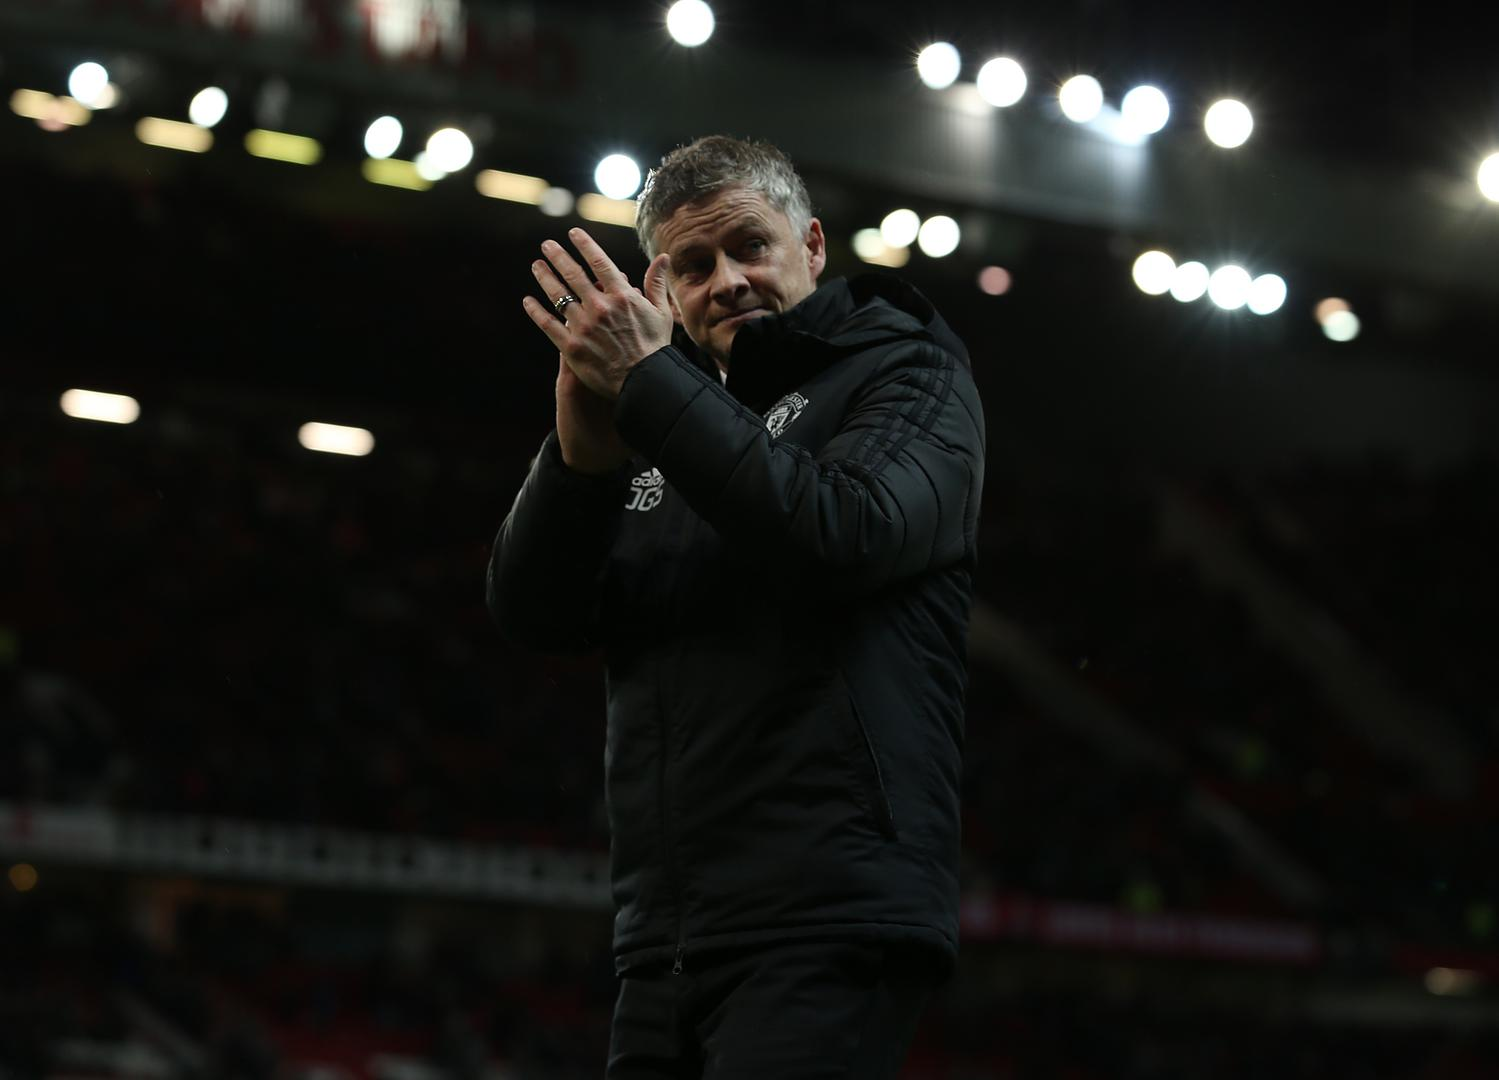 Ole Gunnar Solskjaer applauds the crowd.